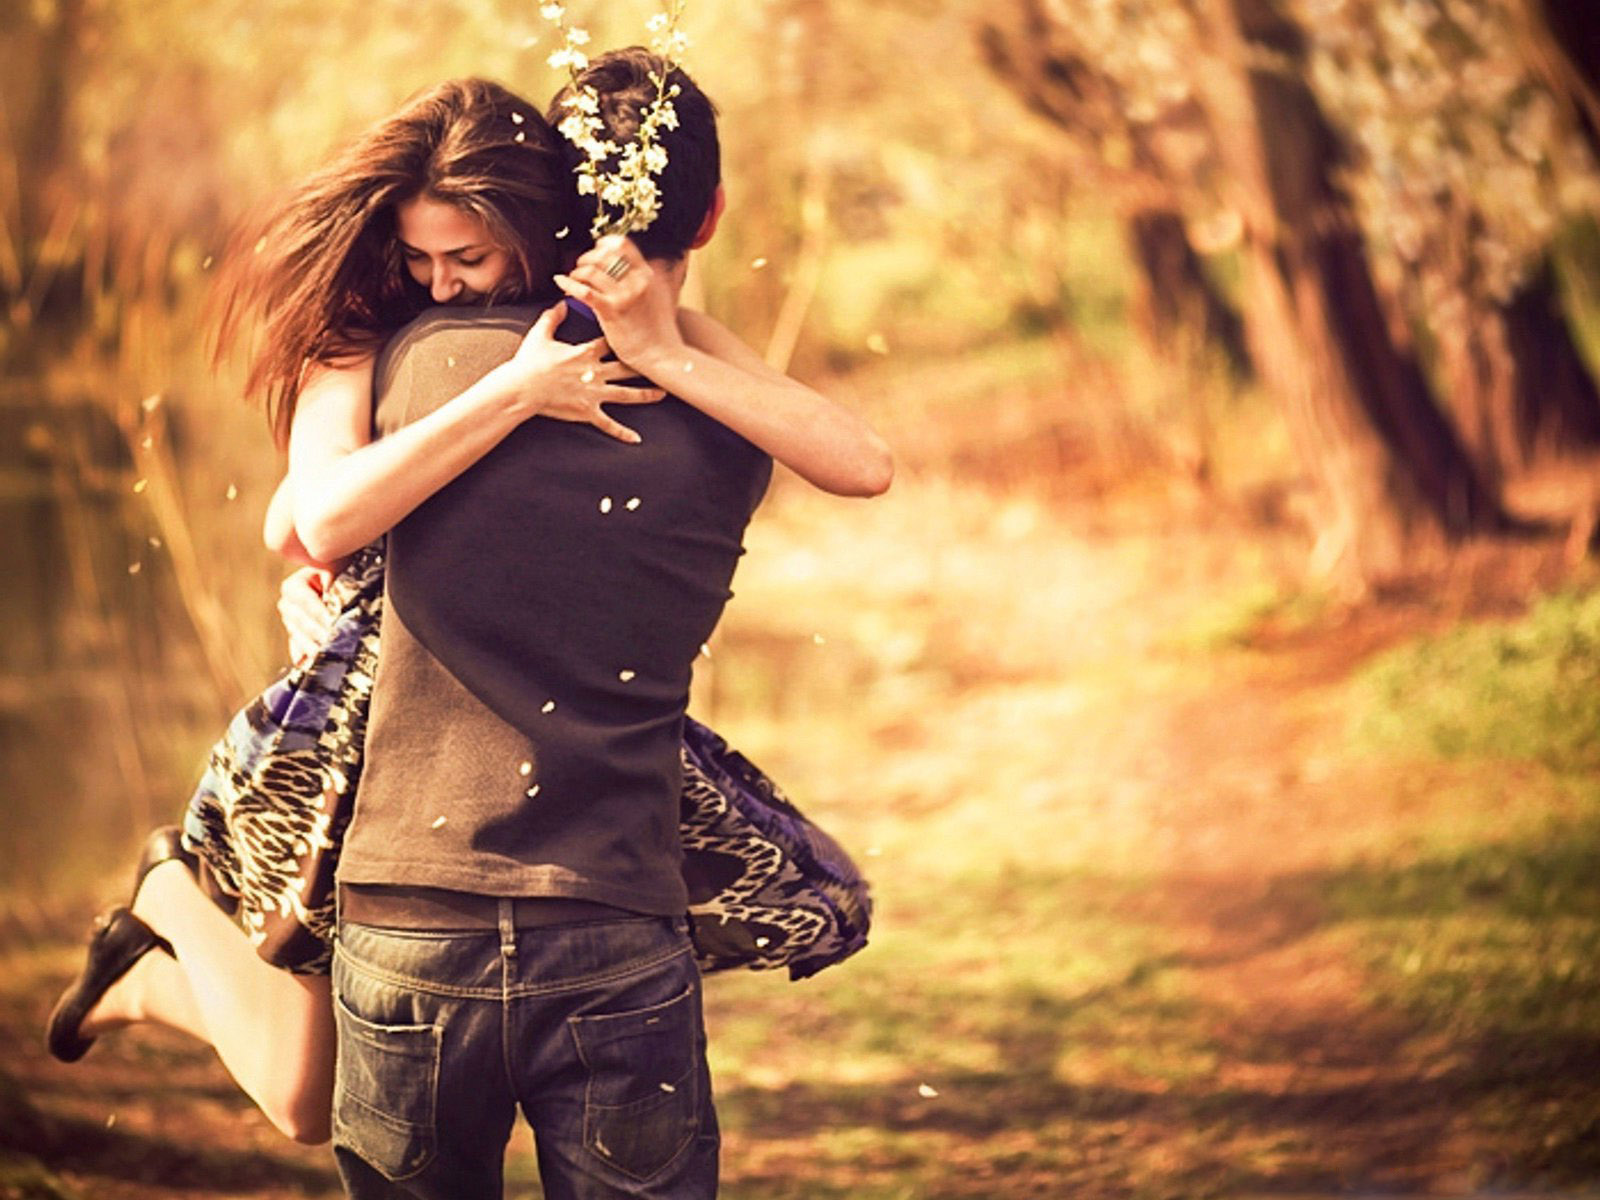 Happy-Valentine's-Day-Love-HD-Wallpapers-5